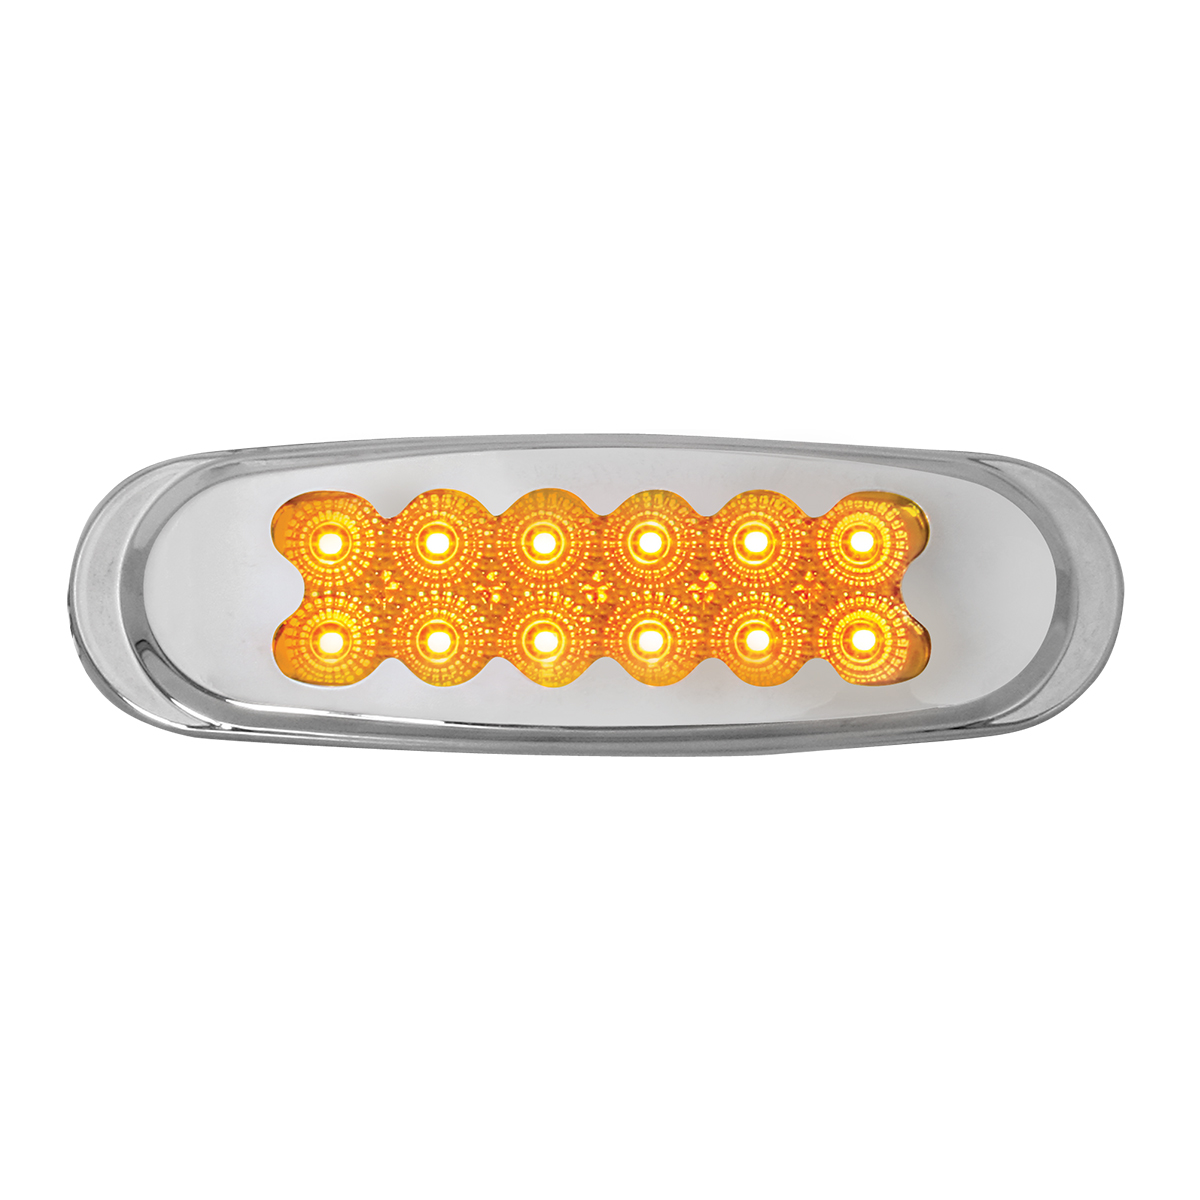 Grand General 76703 Red Matrix Style Ultra Thin Spyder 12-LED Marker Light with Chrome Bezel and Clear Lens